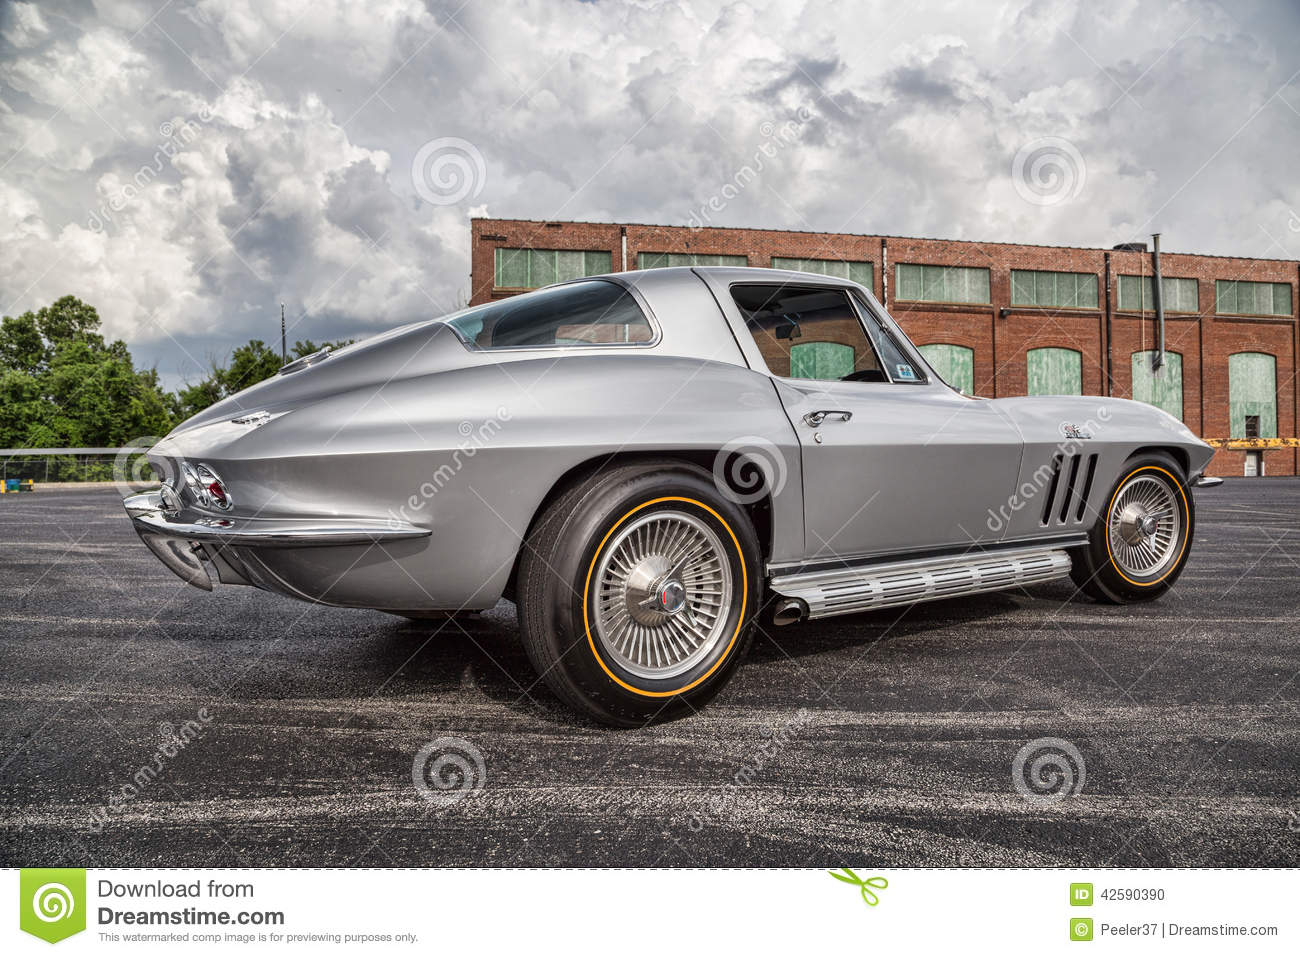 1966 Chevrolet Corvette Stingray Editorial Image Of Tire Chevy Download Grey 42590390